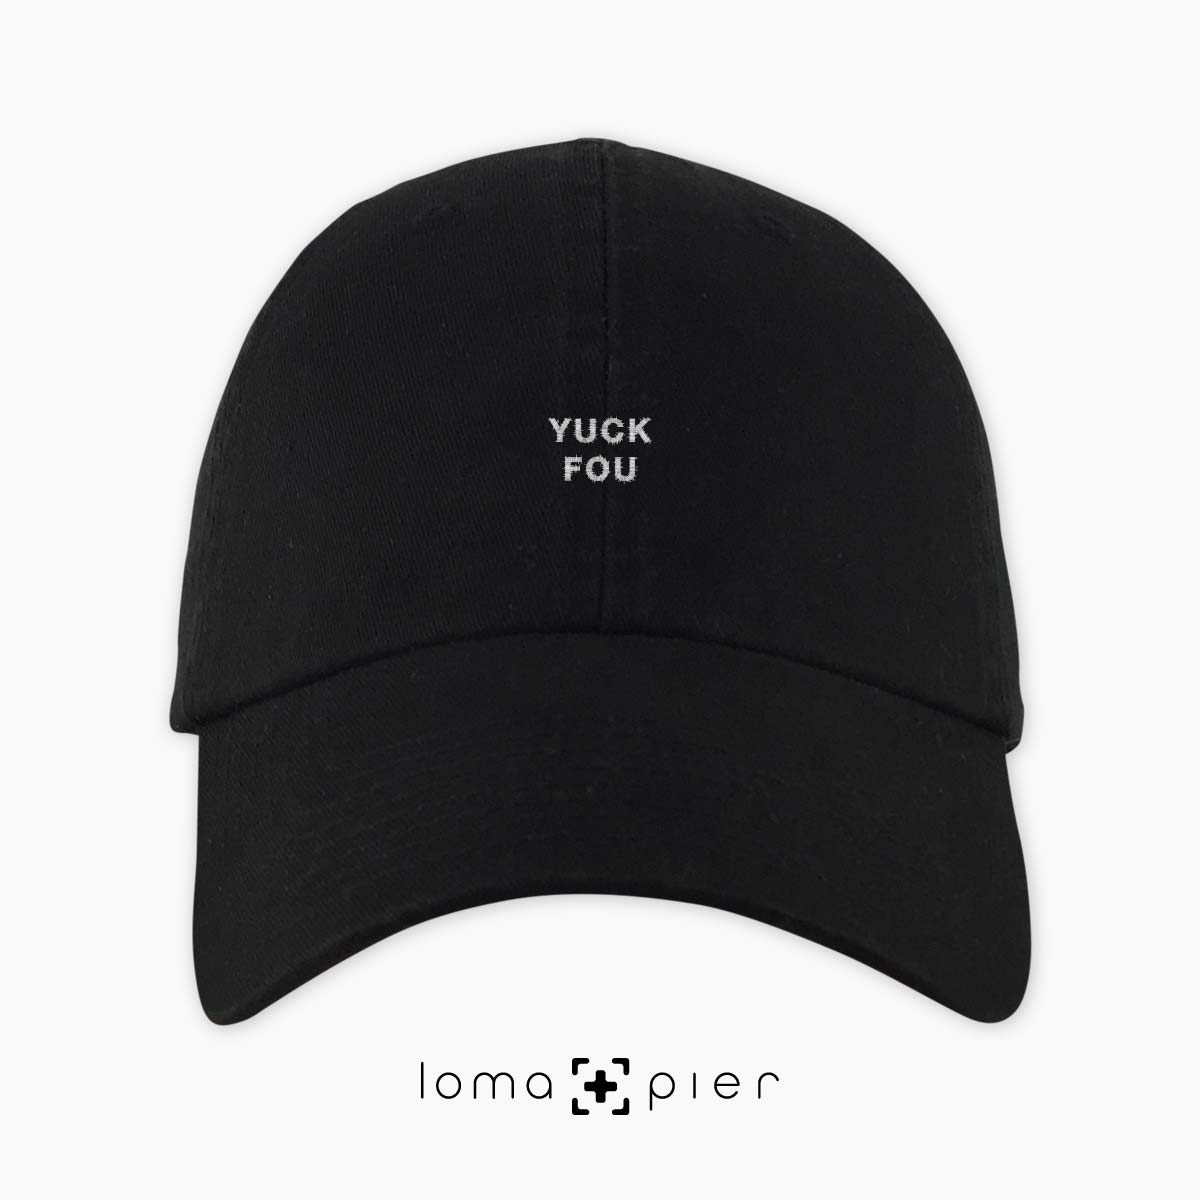 YUCK FOU typography embroidered on a black unstructured dad hat with white thread by loma+pier hat store made in the USA